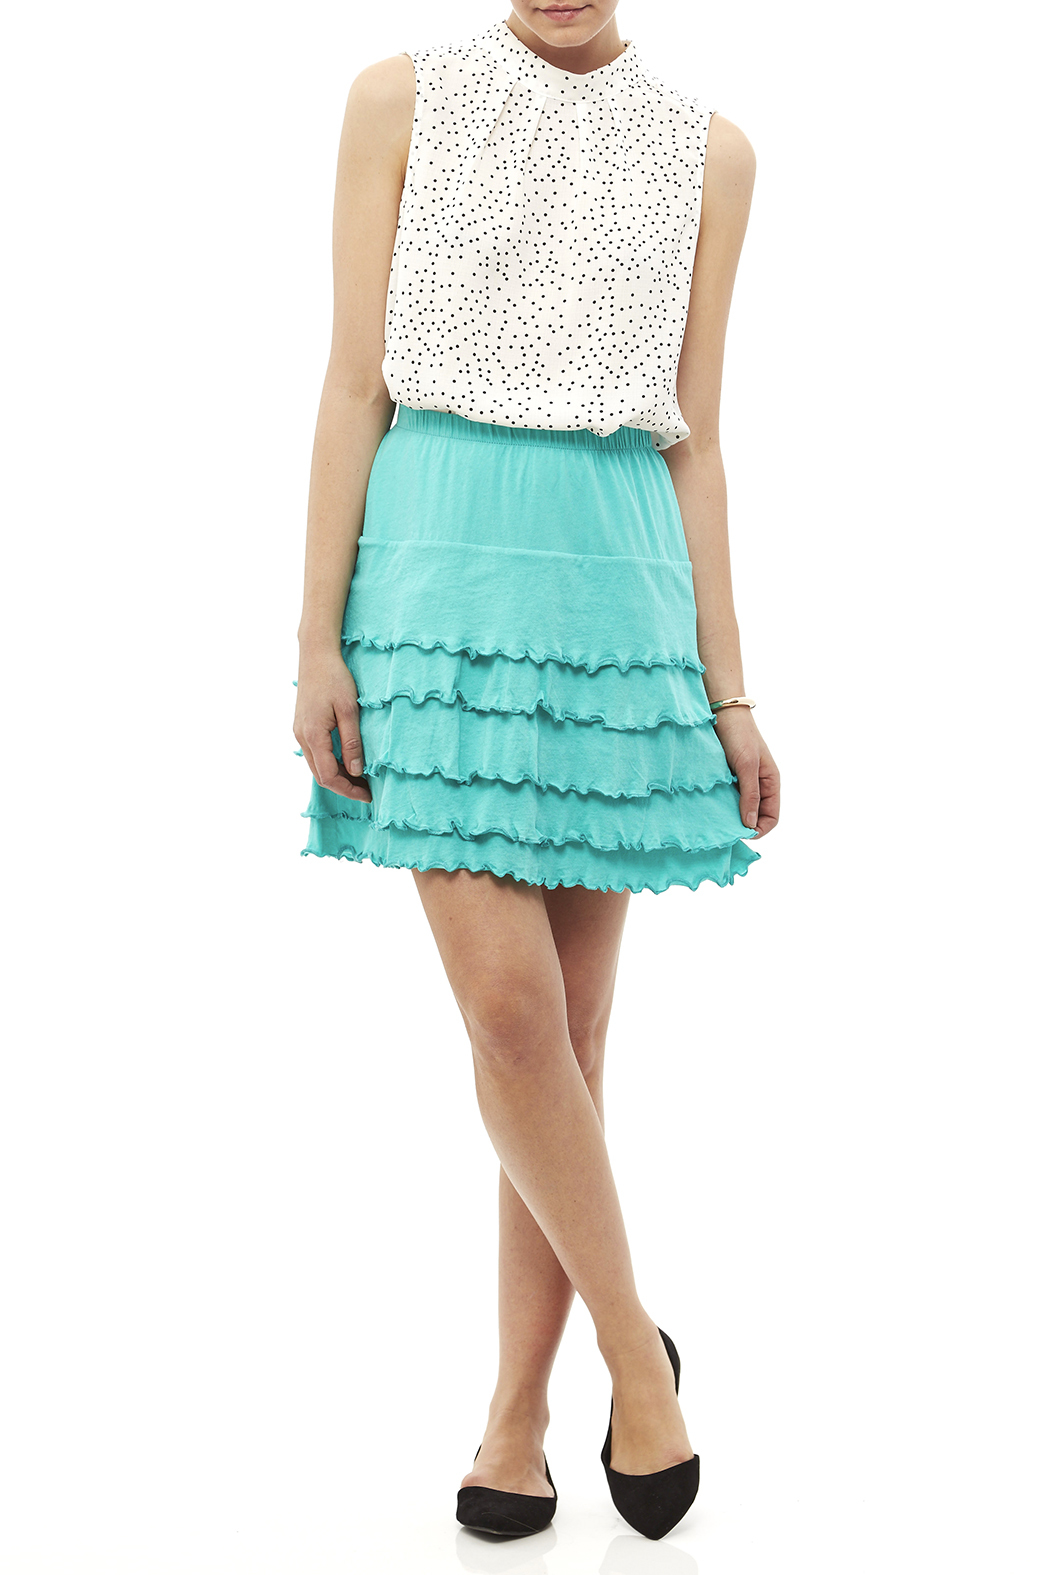 Nomadic Traders Teal Ruffle Skirt - Side Cropped Image